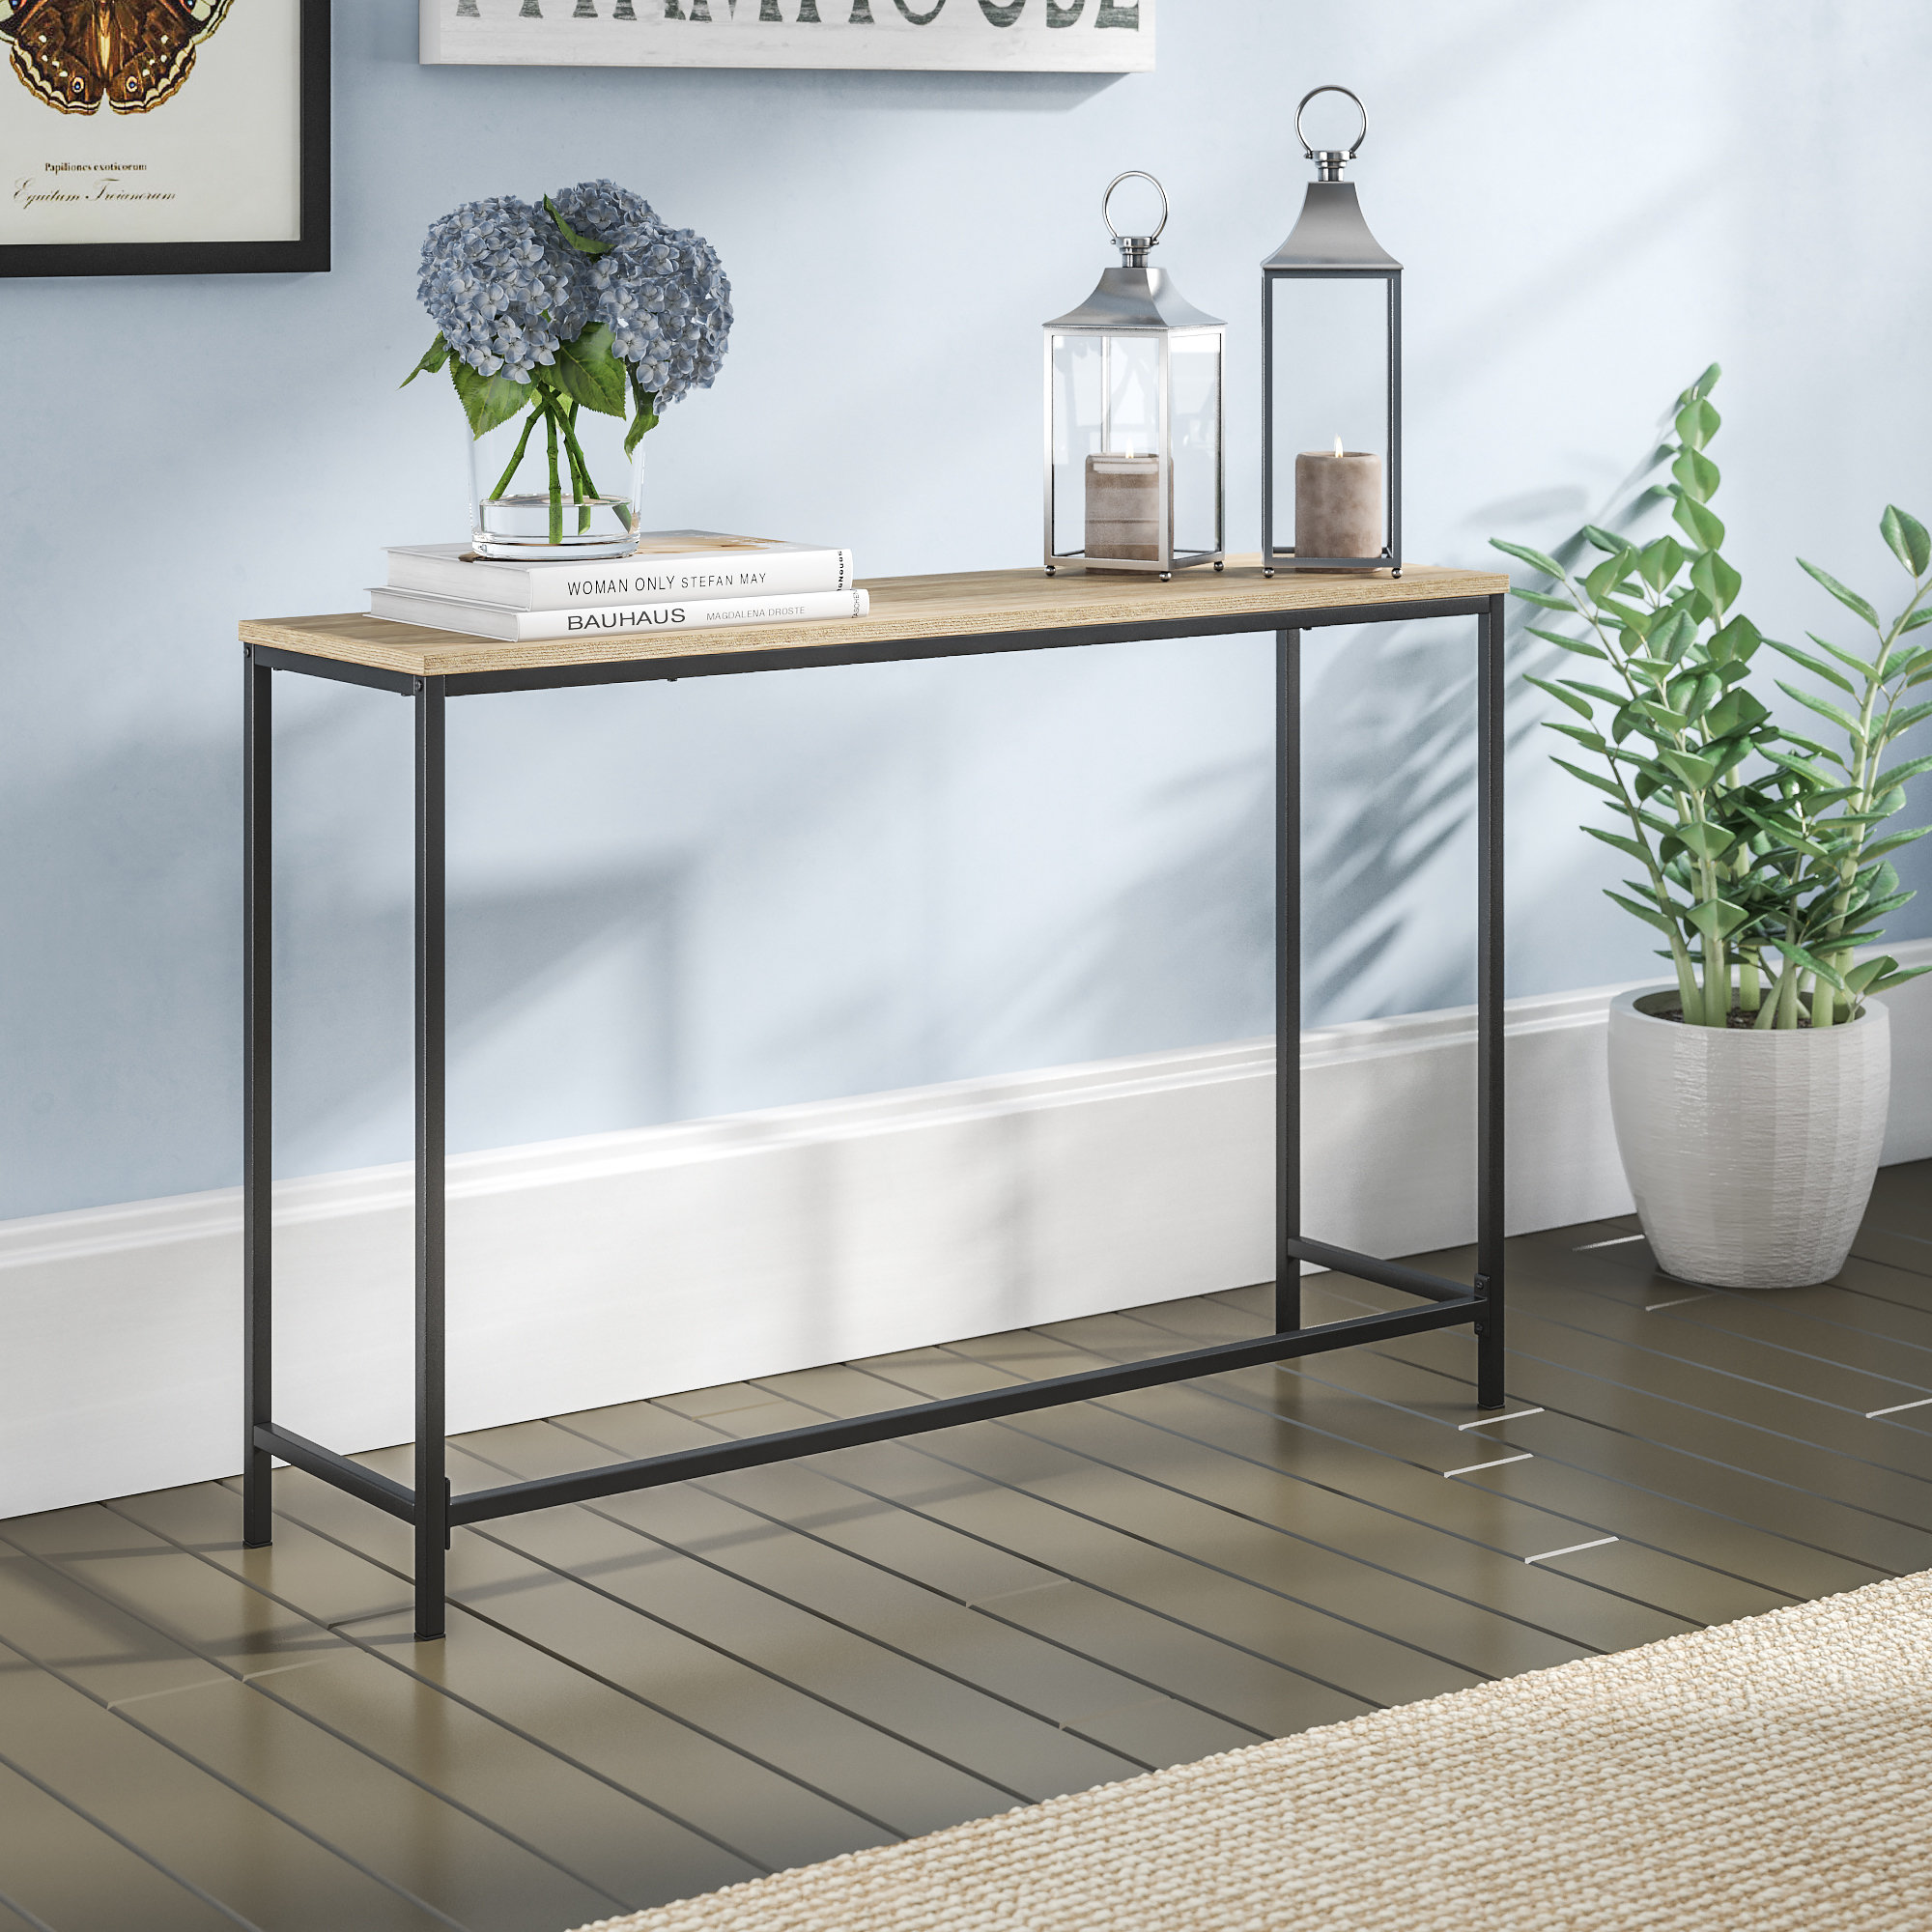 laurel foundry modern farmhouse default name accent table save half console big and tall recliners threshold mango wood dining mission style coffee plans unicorn adjustable lamp